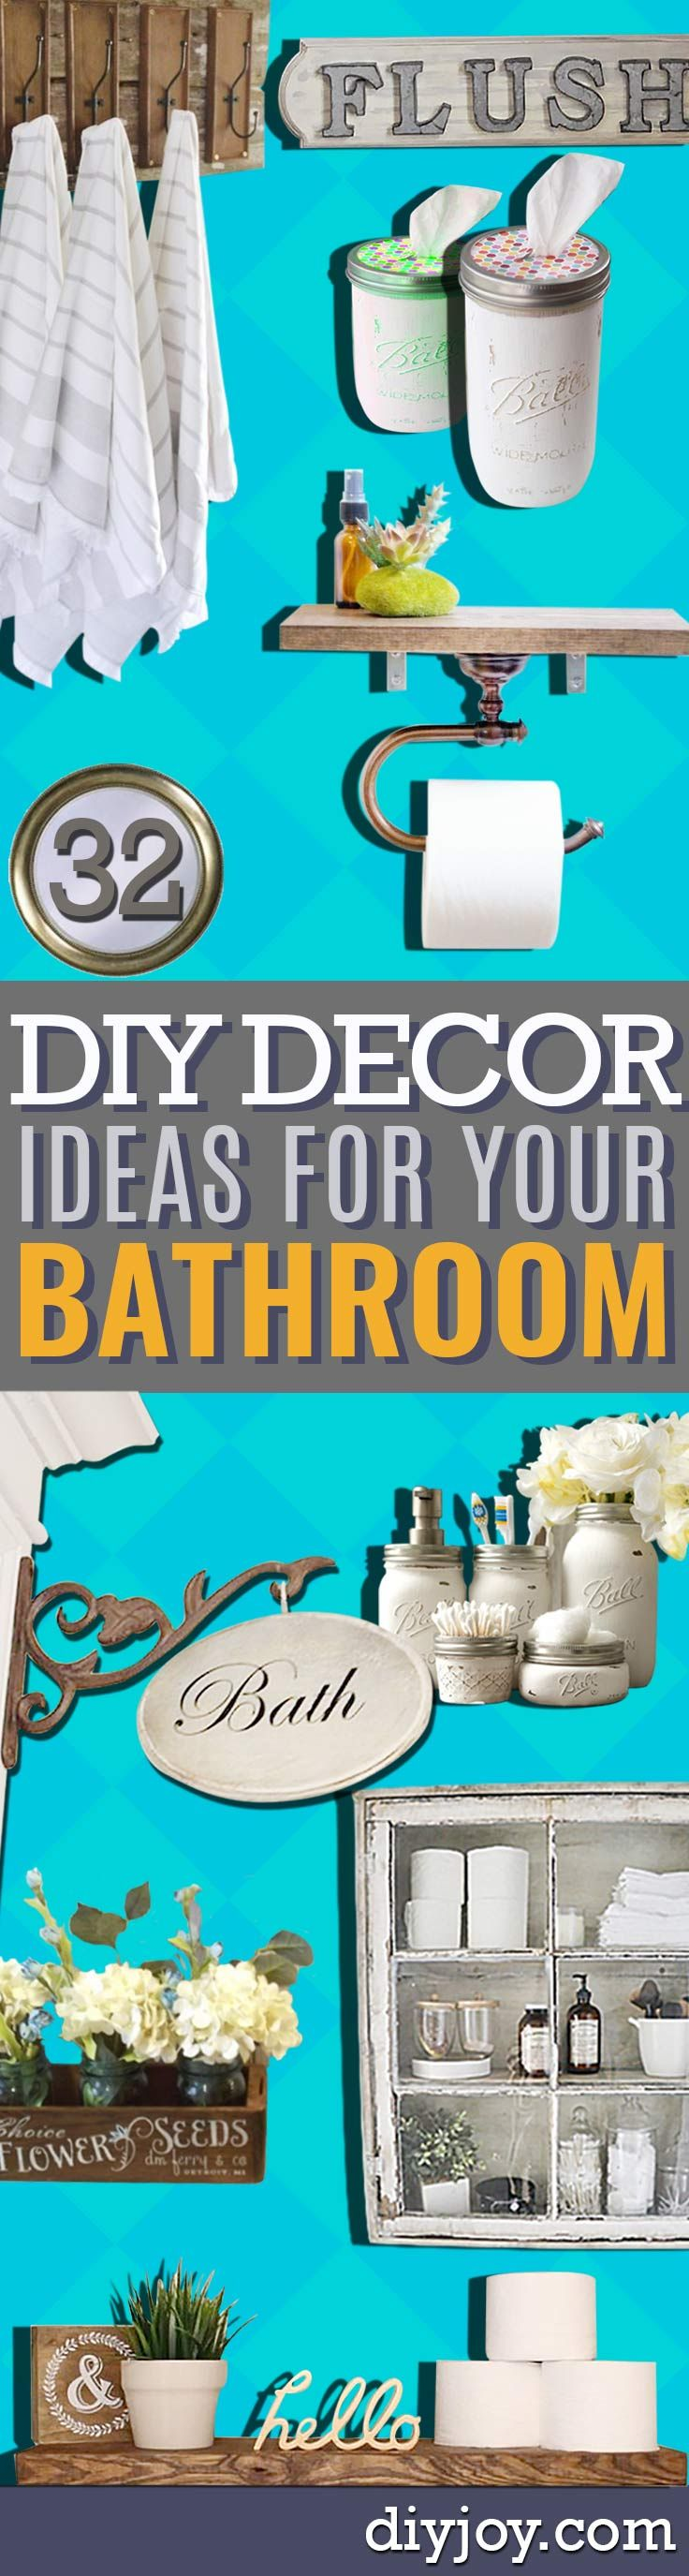 101 best diy projects for the home images on pinterest for Do it yourself bathroom ideas